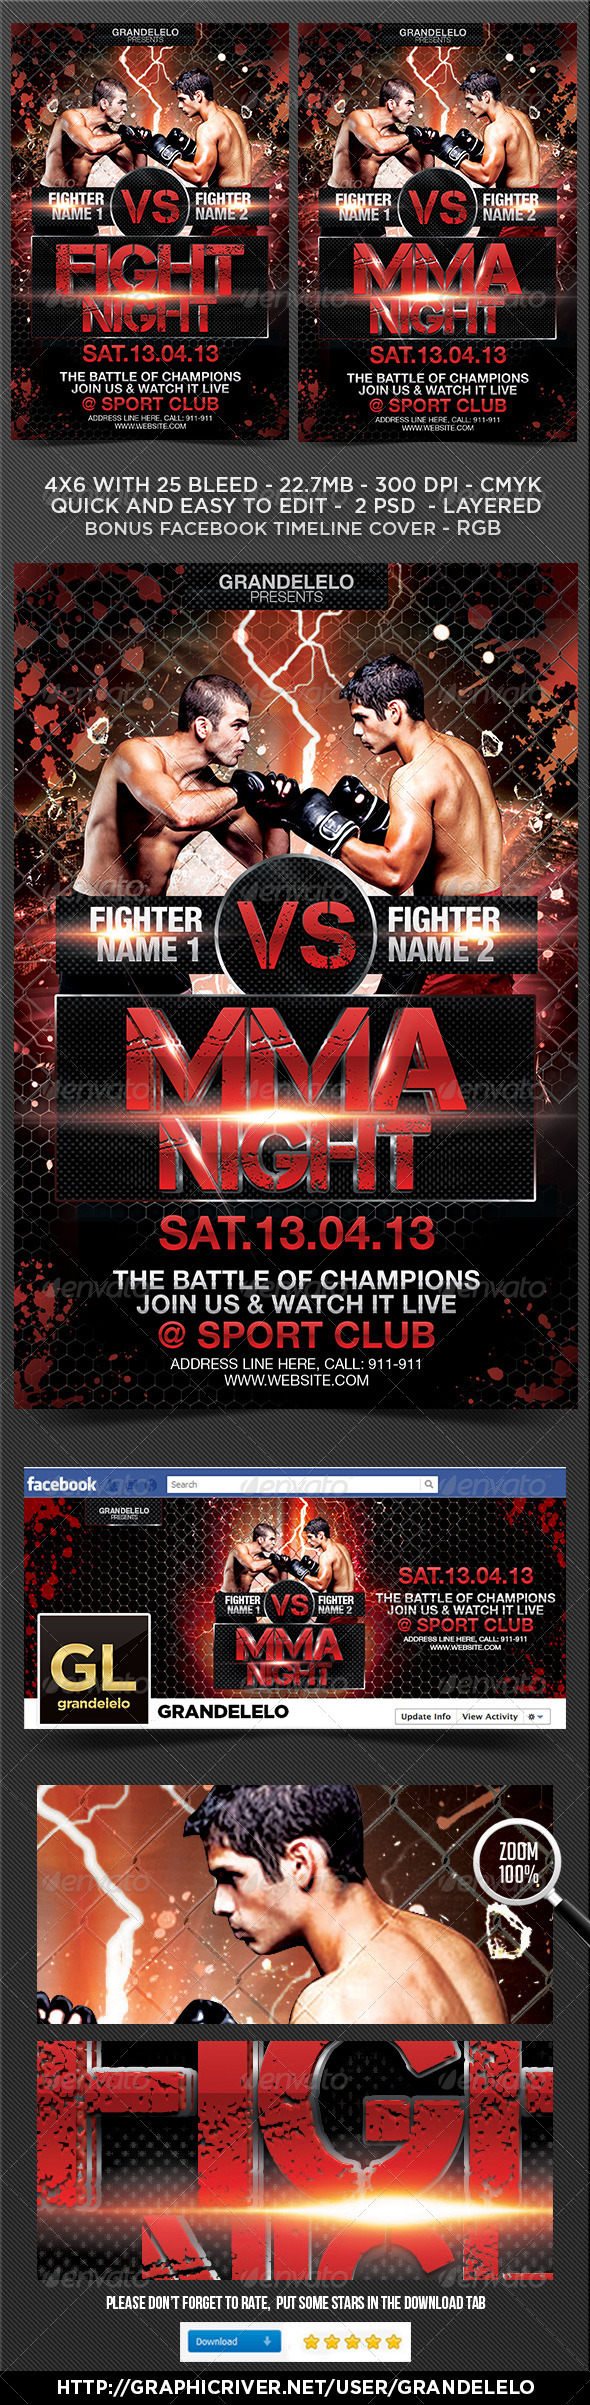 GraphicRiver Fight or MMA Night Flyer Template 4233675